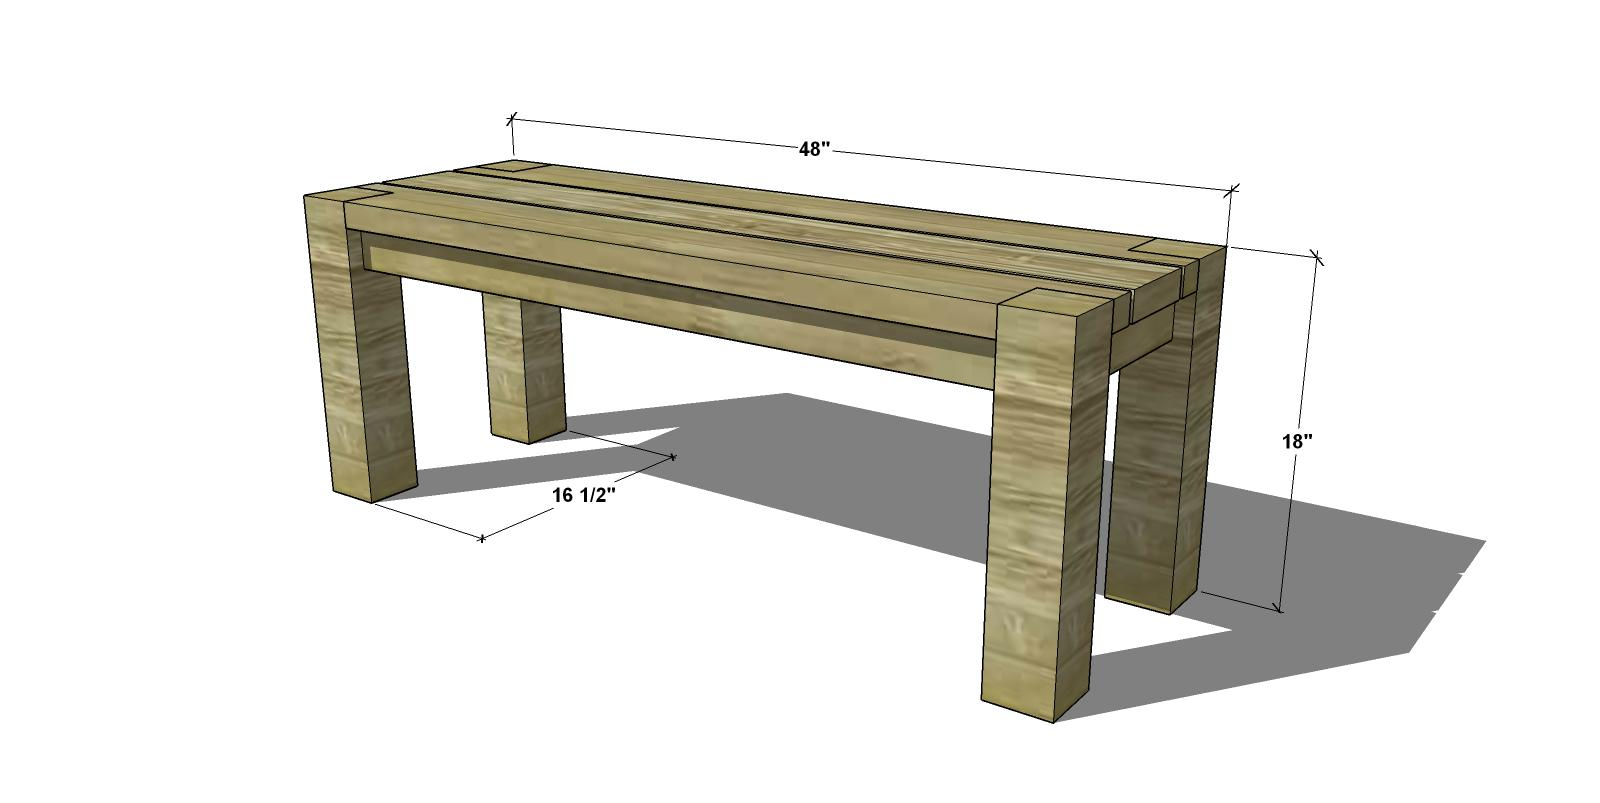 Free Woodworking Plans To Build A Big Sur Coastal Collection 48 Inch